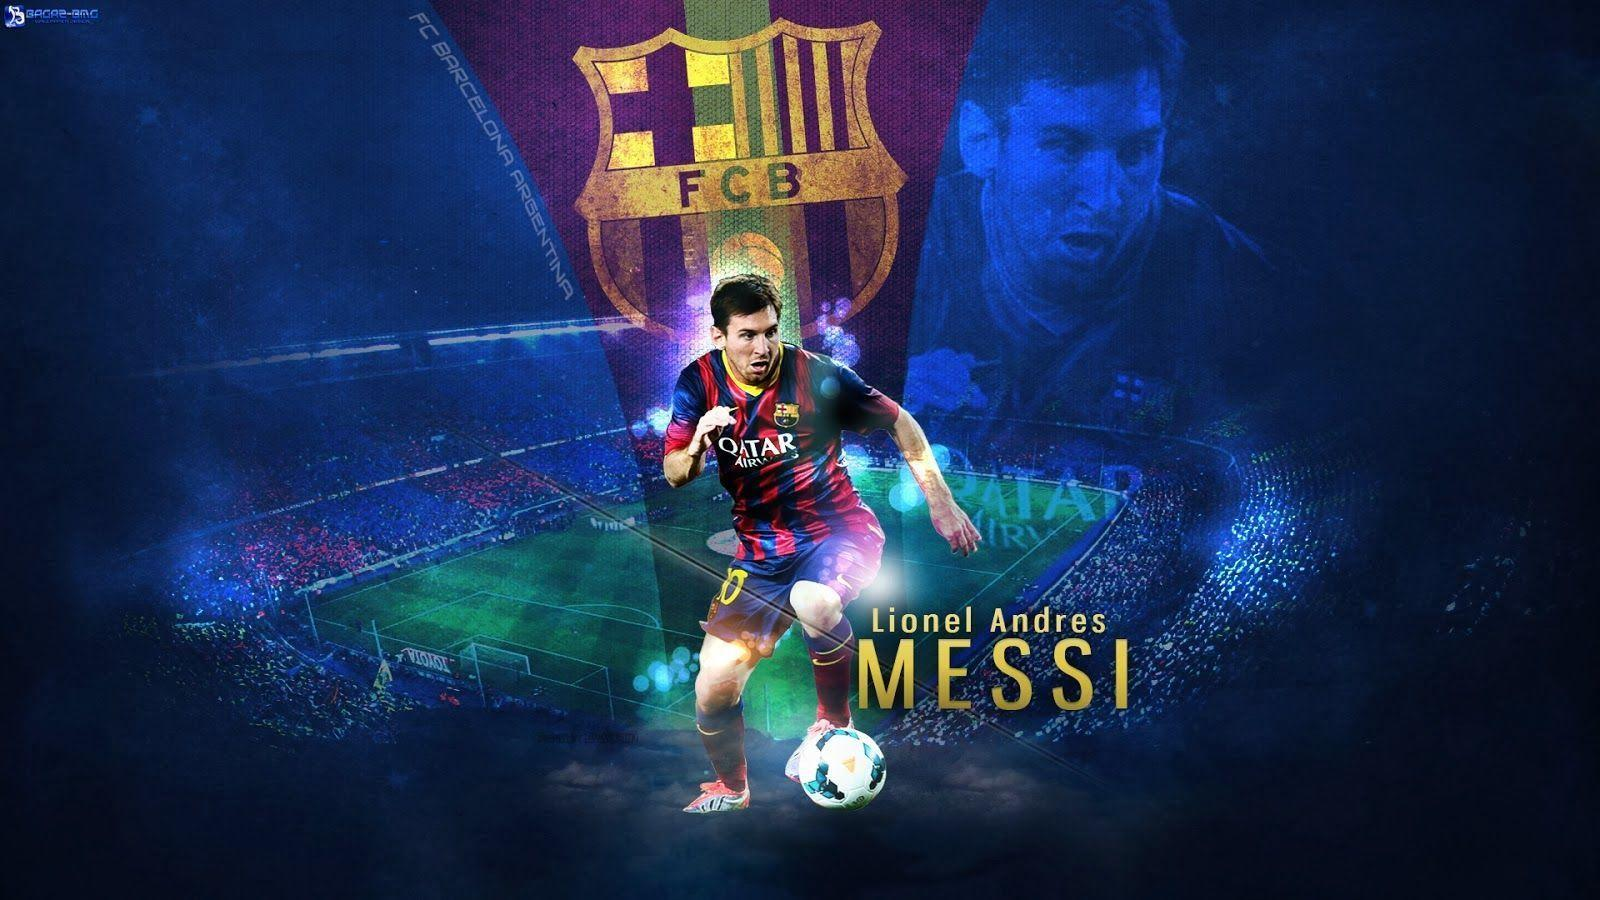 Hd Messi Wallpapers For Desktops | Onlybackground